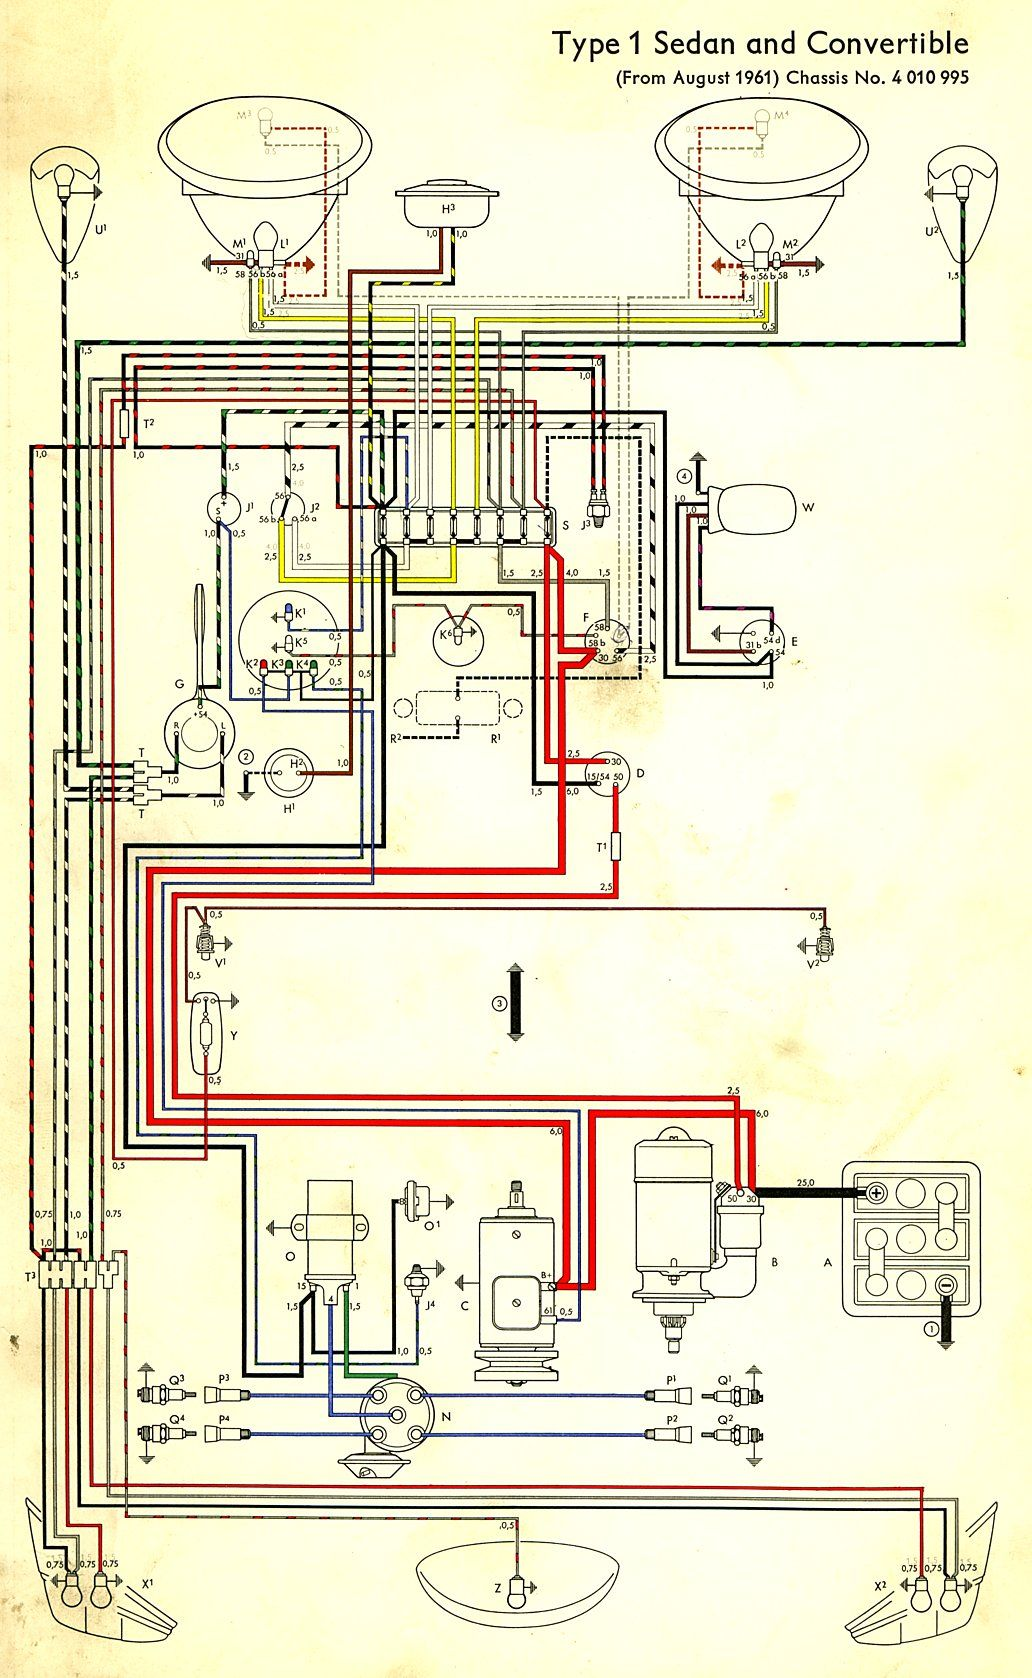 Wiring Diagram In Color 1964 Vw Bug Beetle Convertible The Samba Club Car